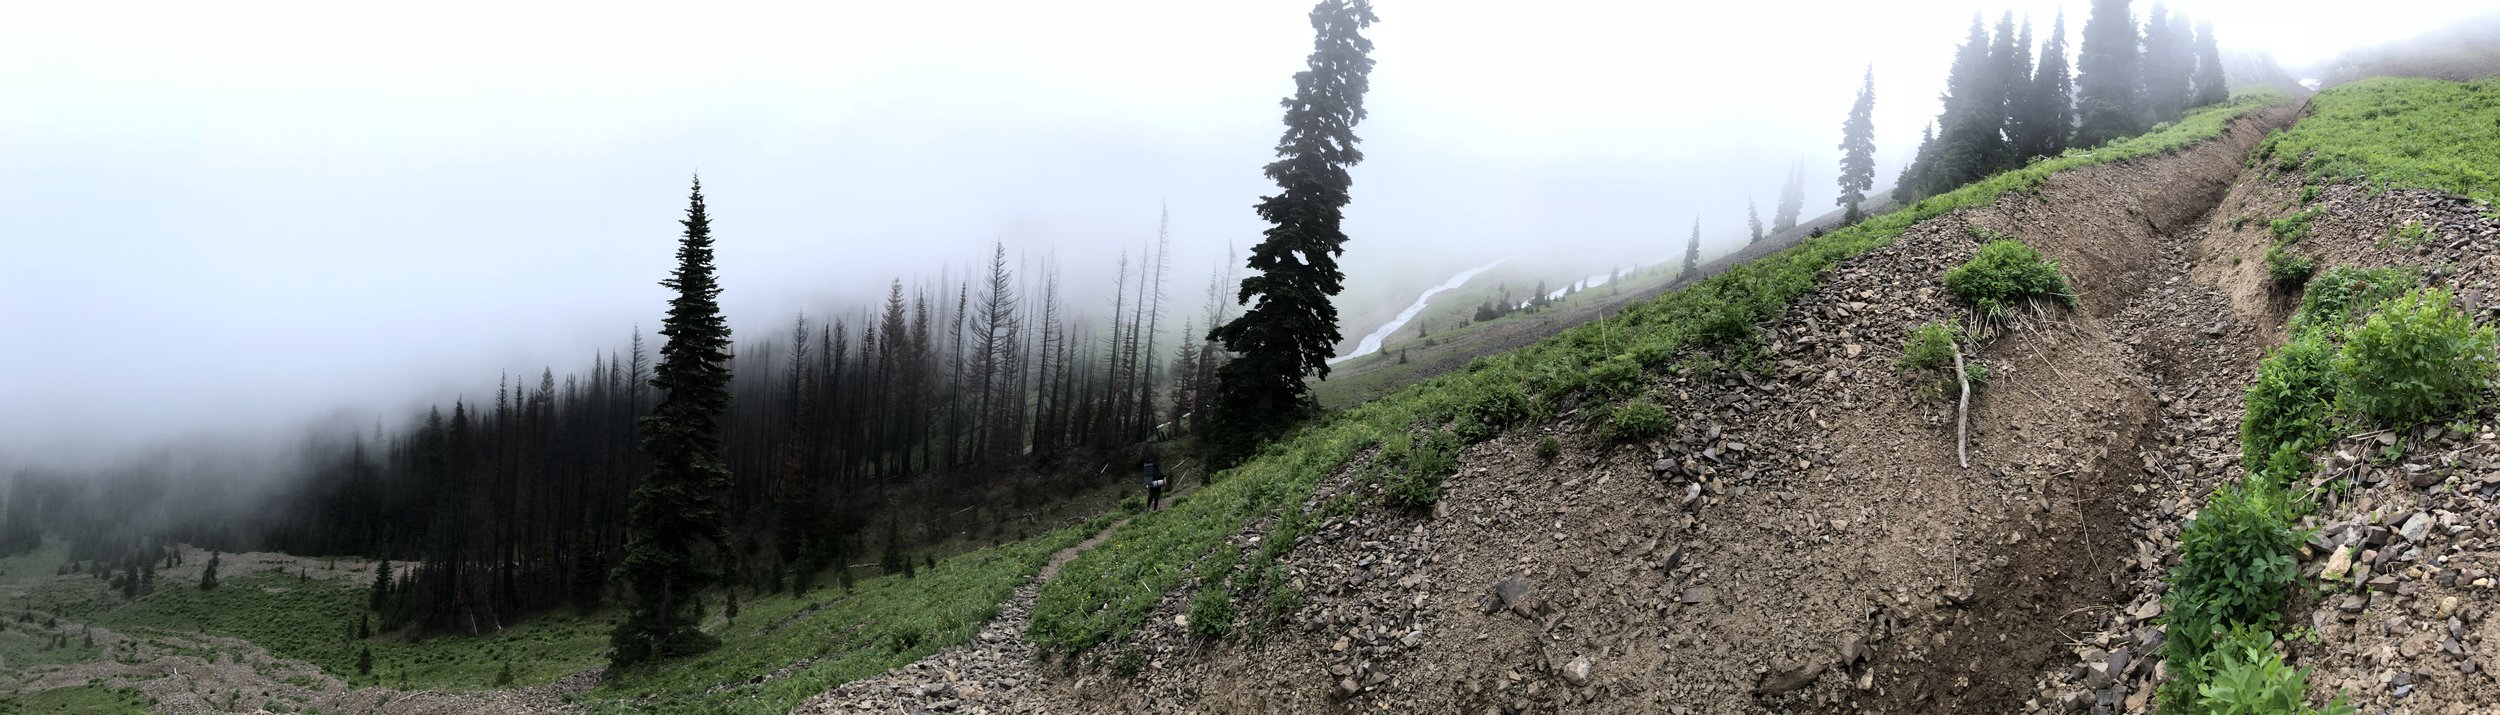 Trip Report - Two Nights in the Central Cascades: Norse Peak Trail to Basin Lake